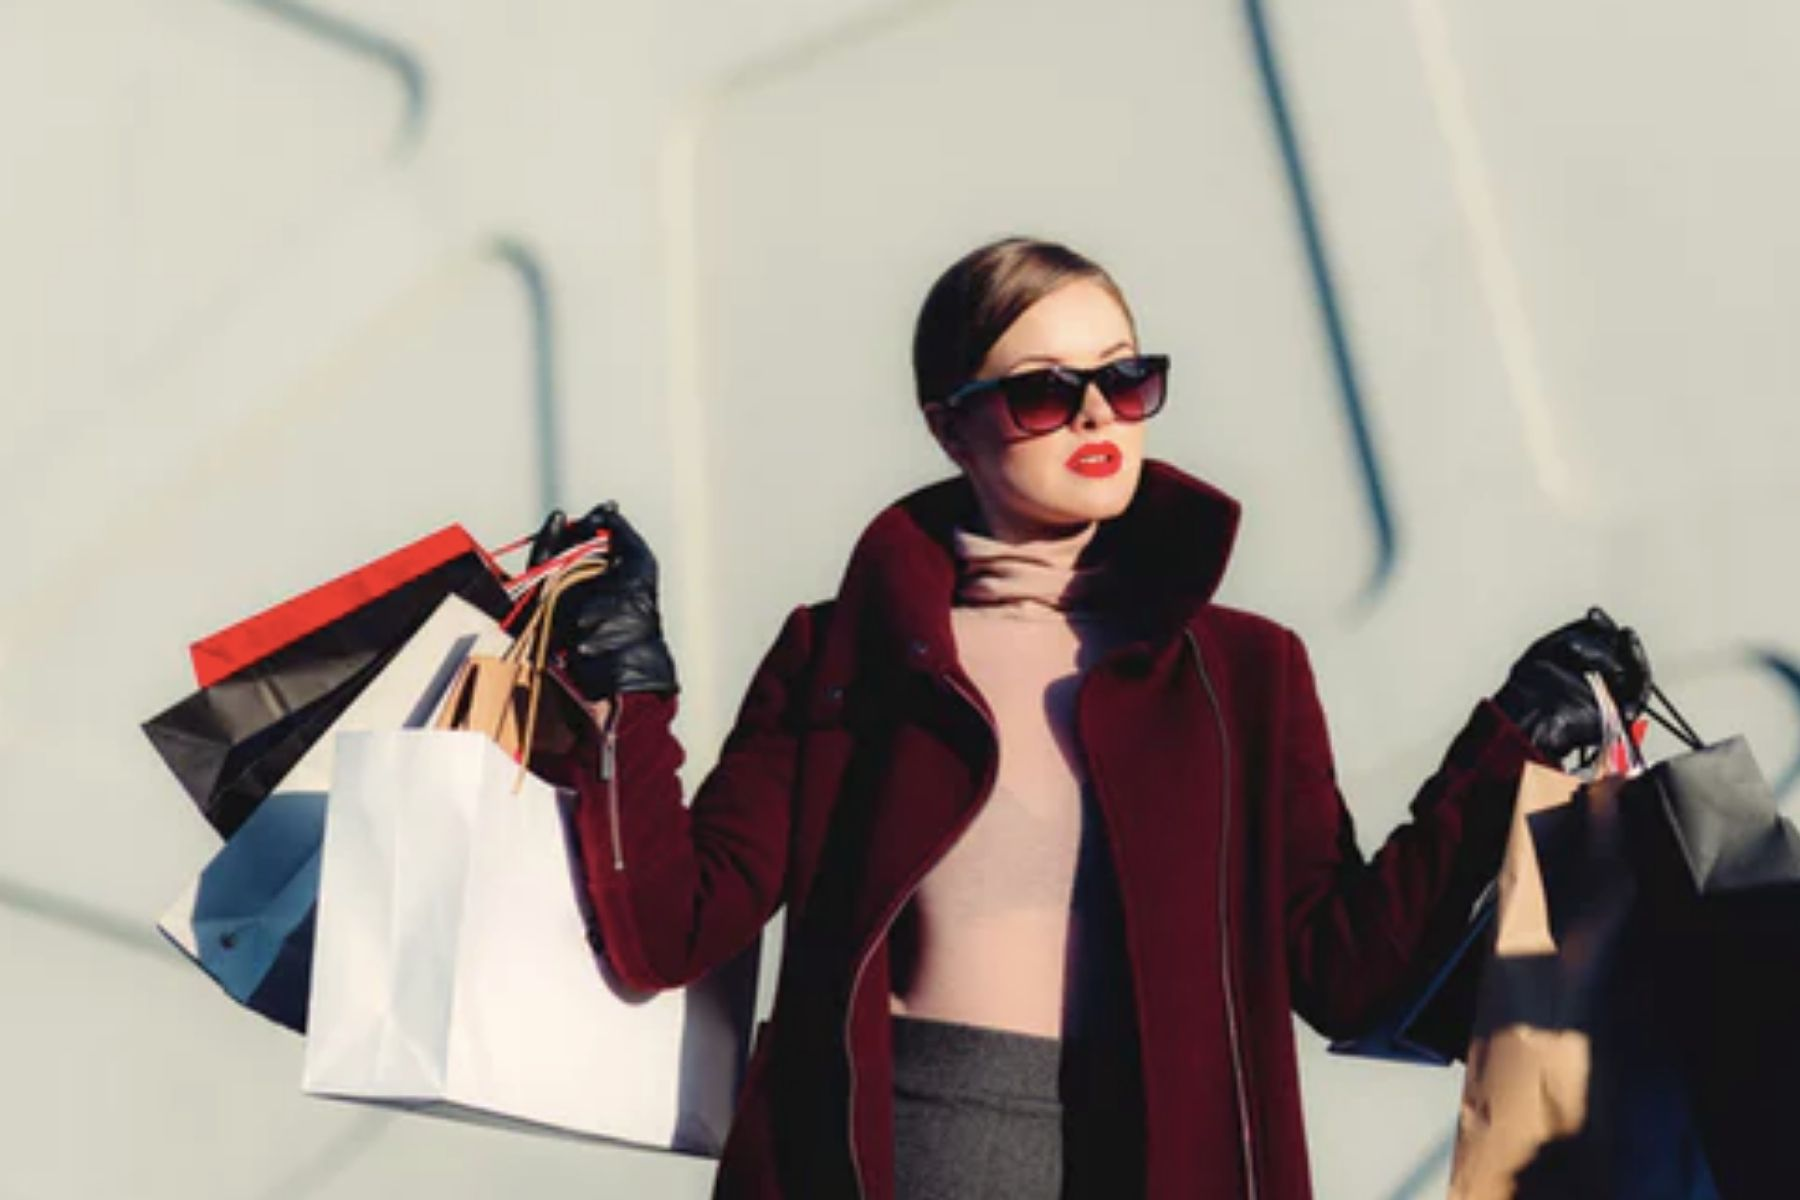 Woman in a red coat holding shopping bags